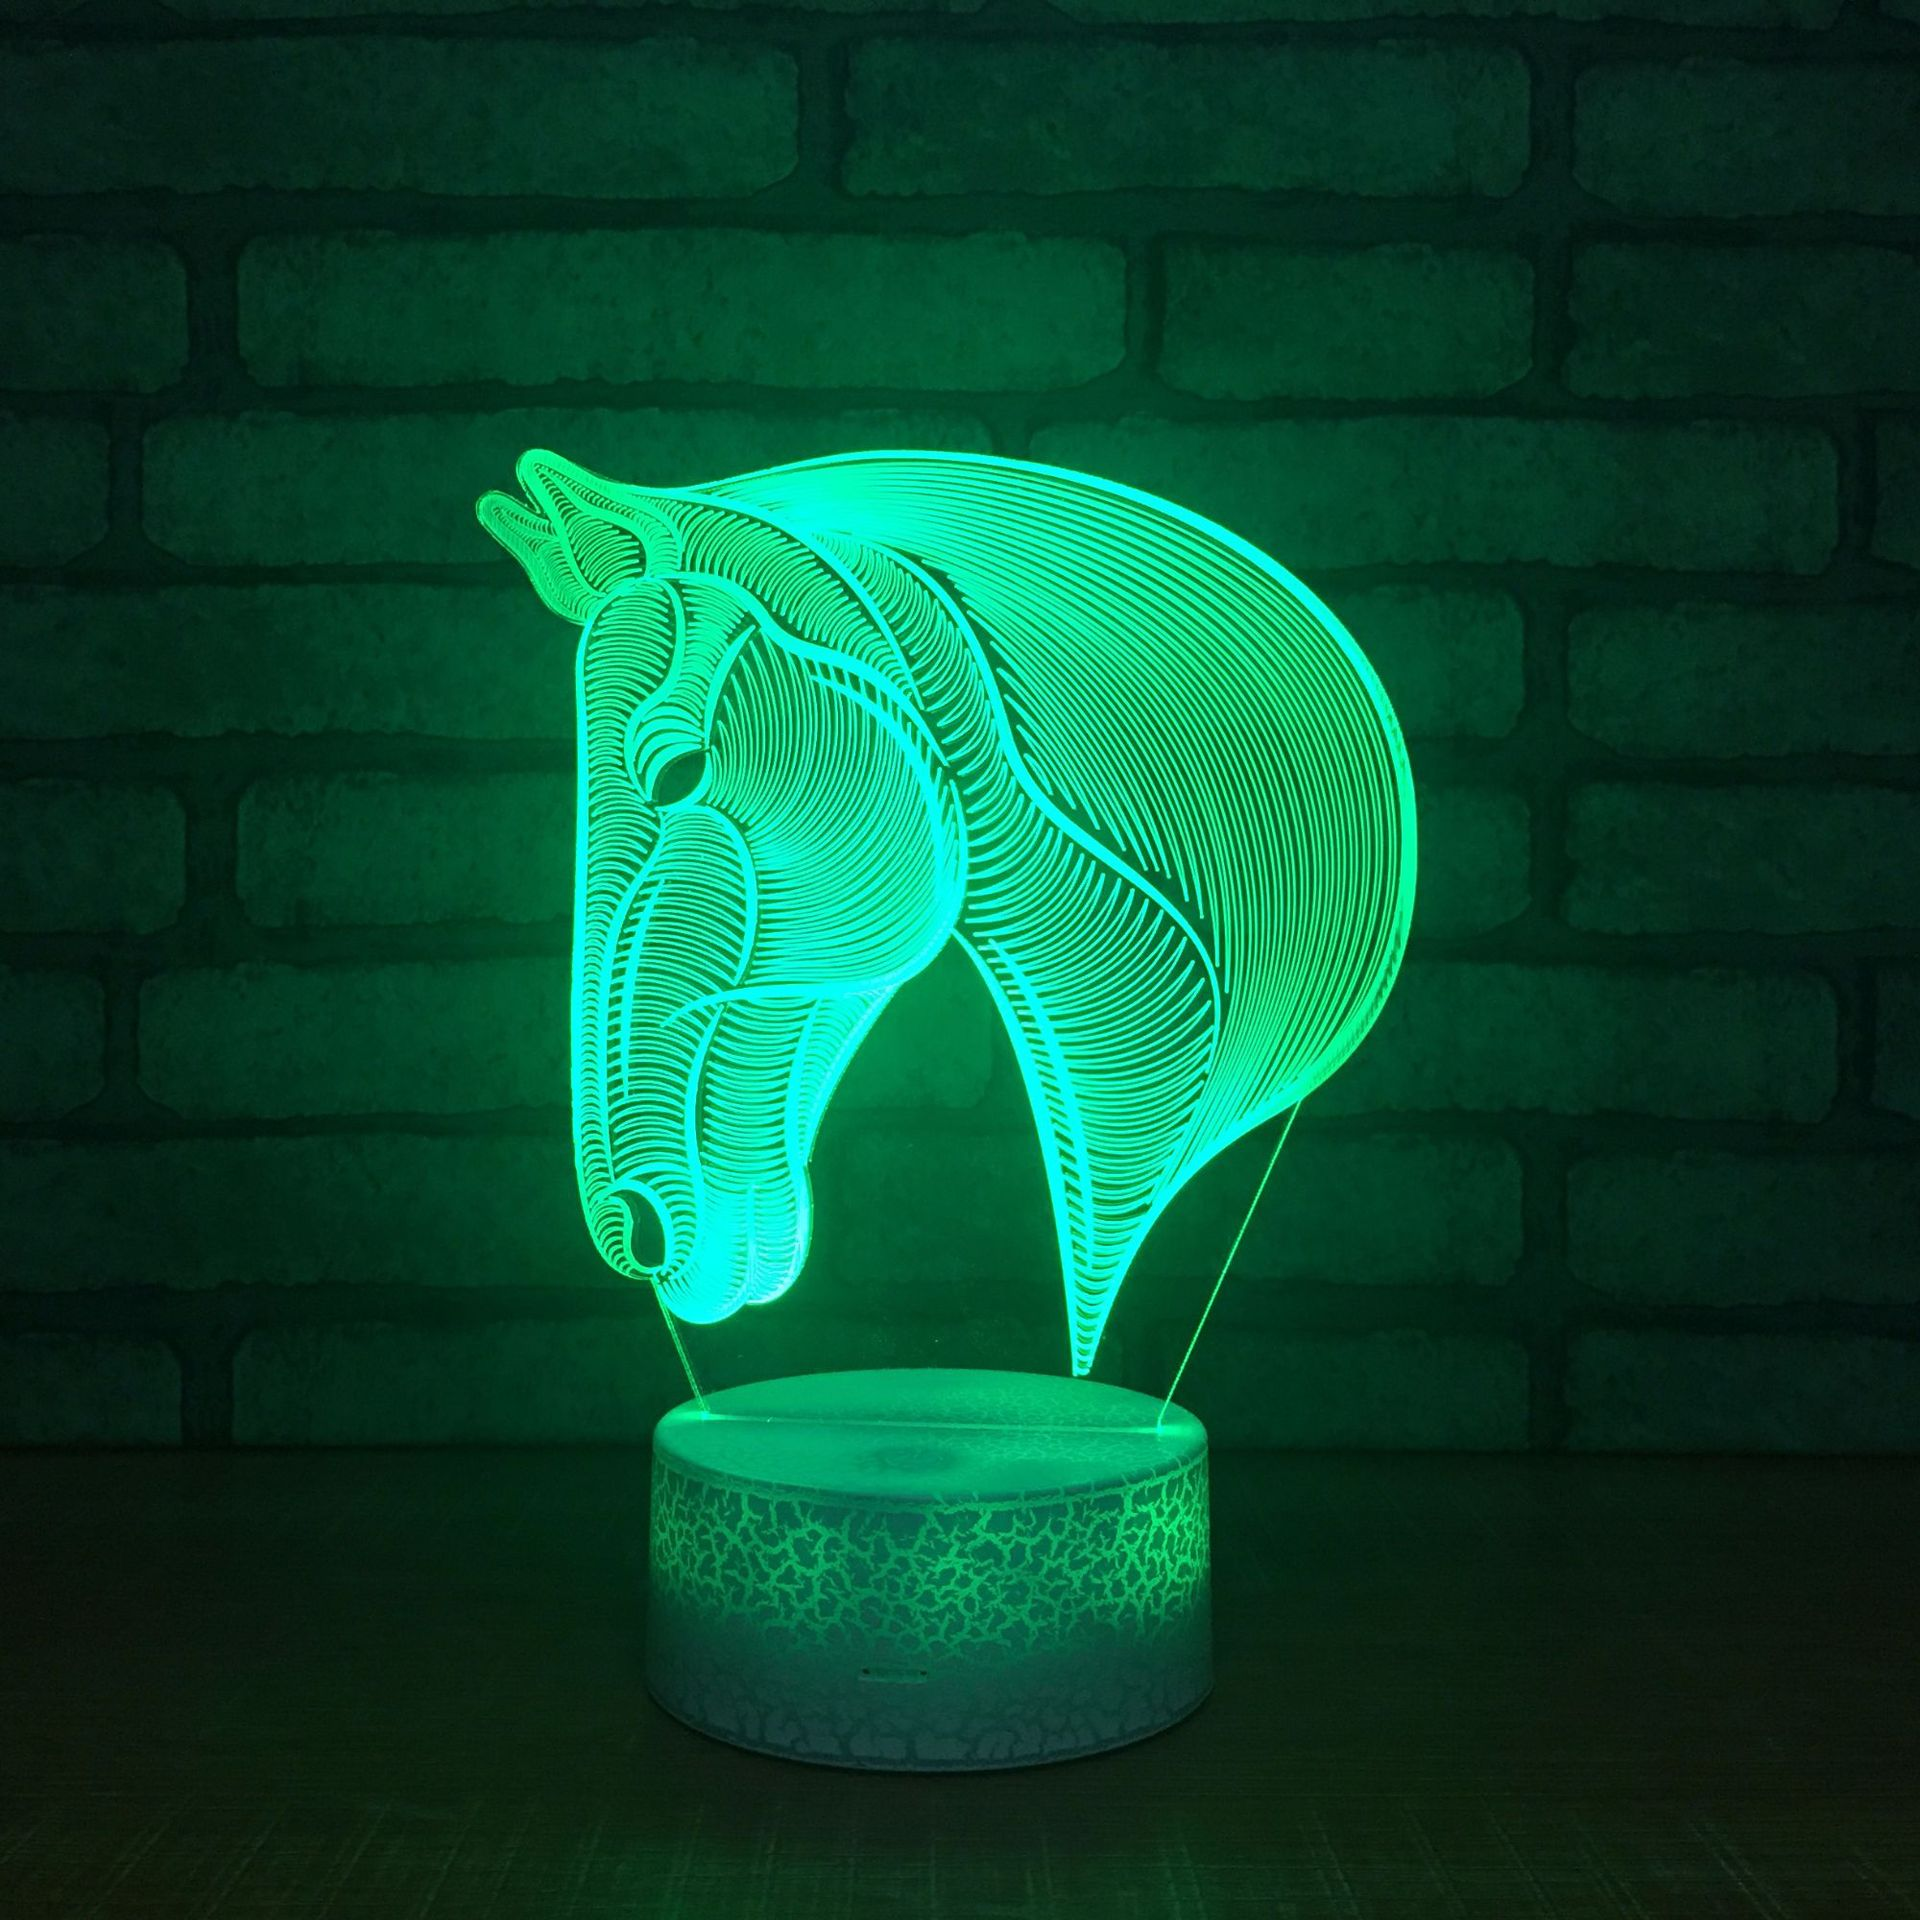 New Led Acrylic 3d Lamp Creative Holiday Gift Horsehead 3d Night Light Wholesale 7 Color Change Light Fixtures